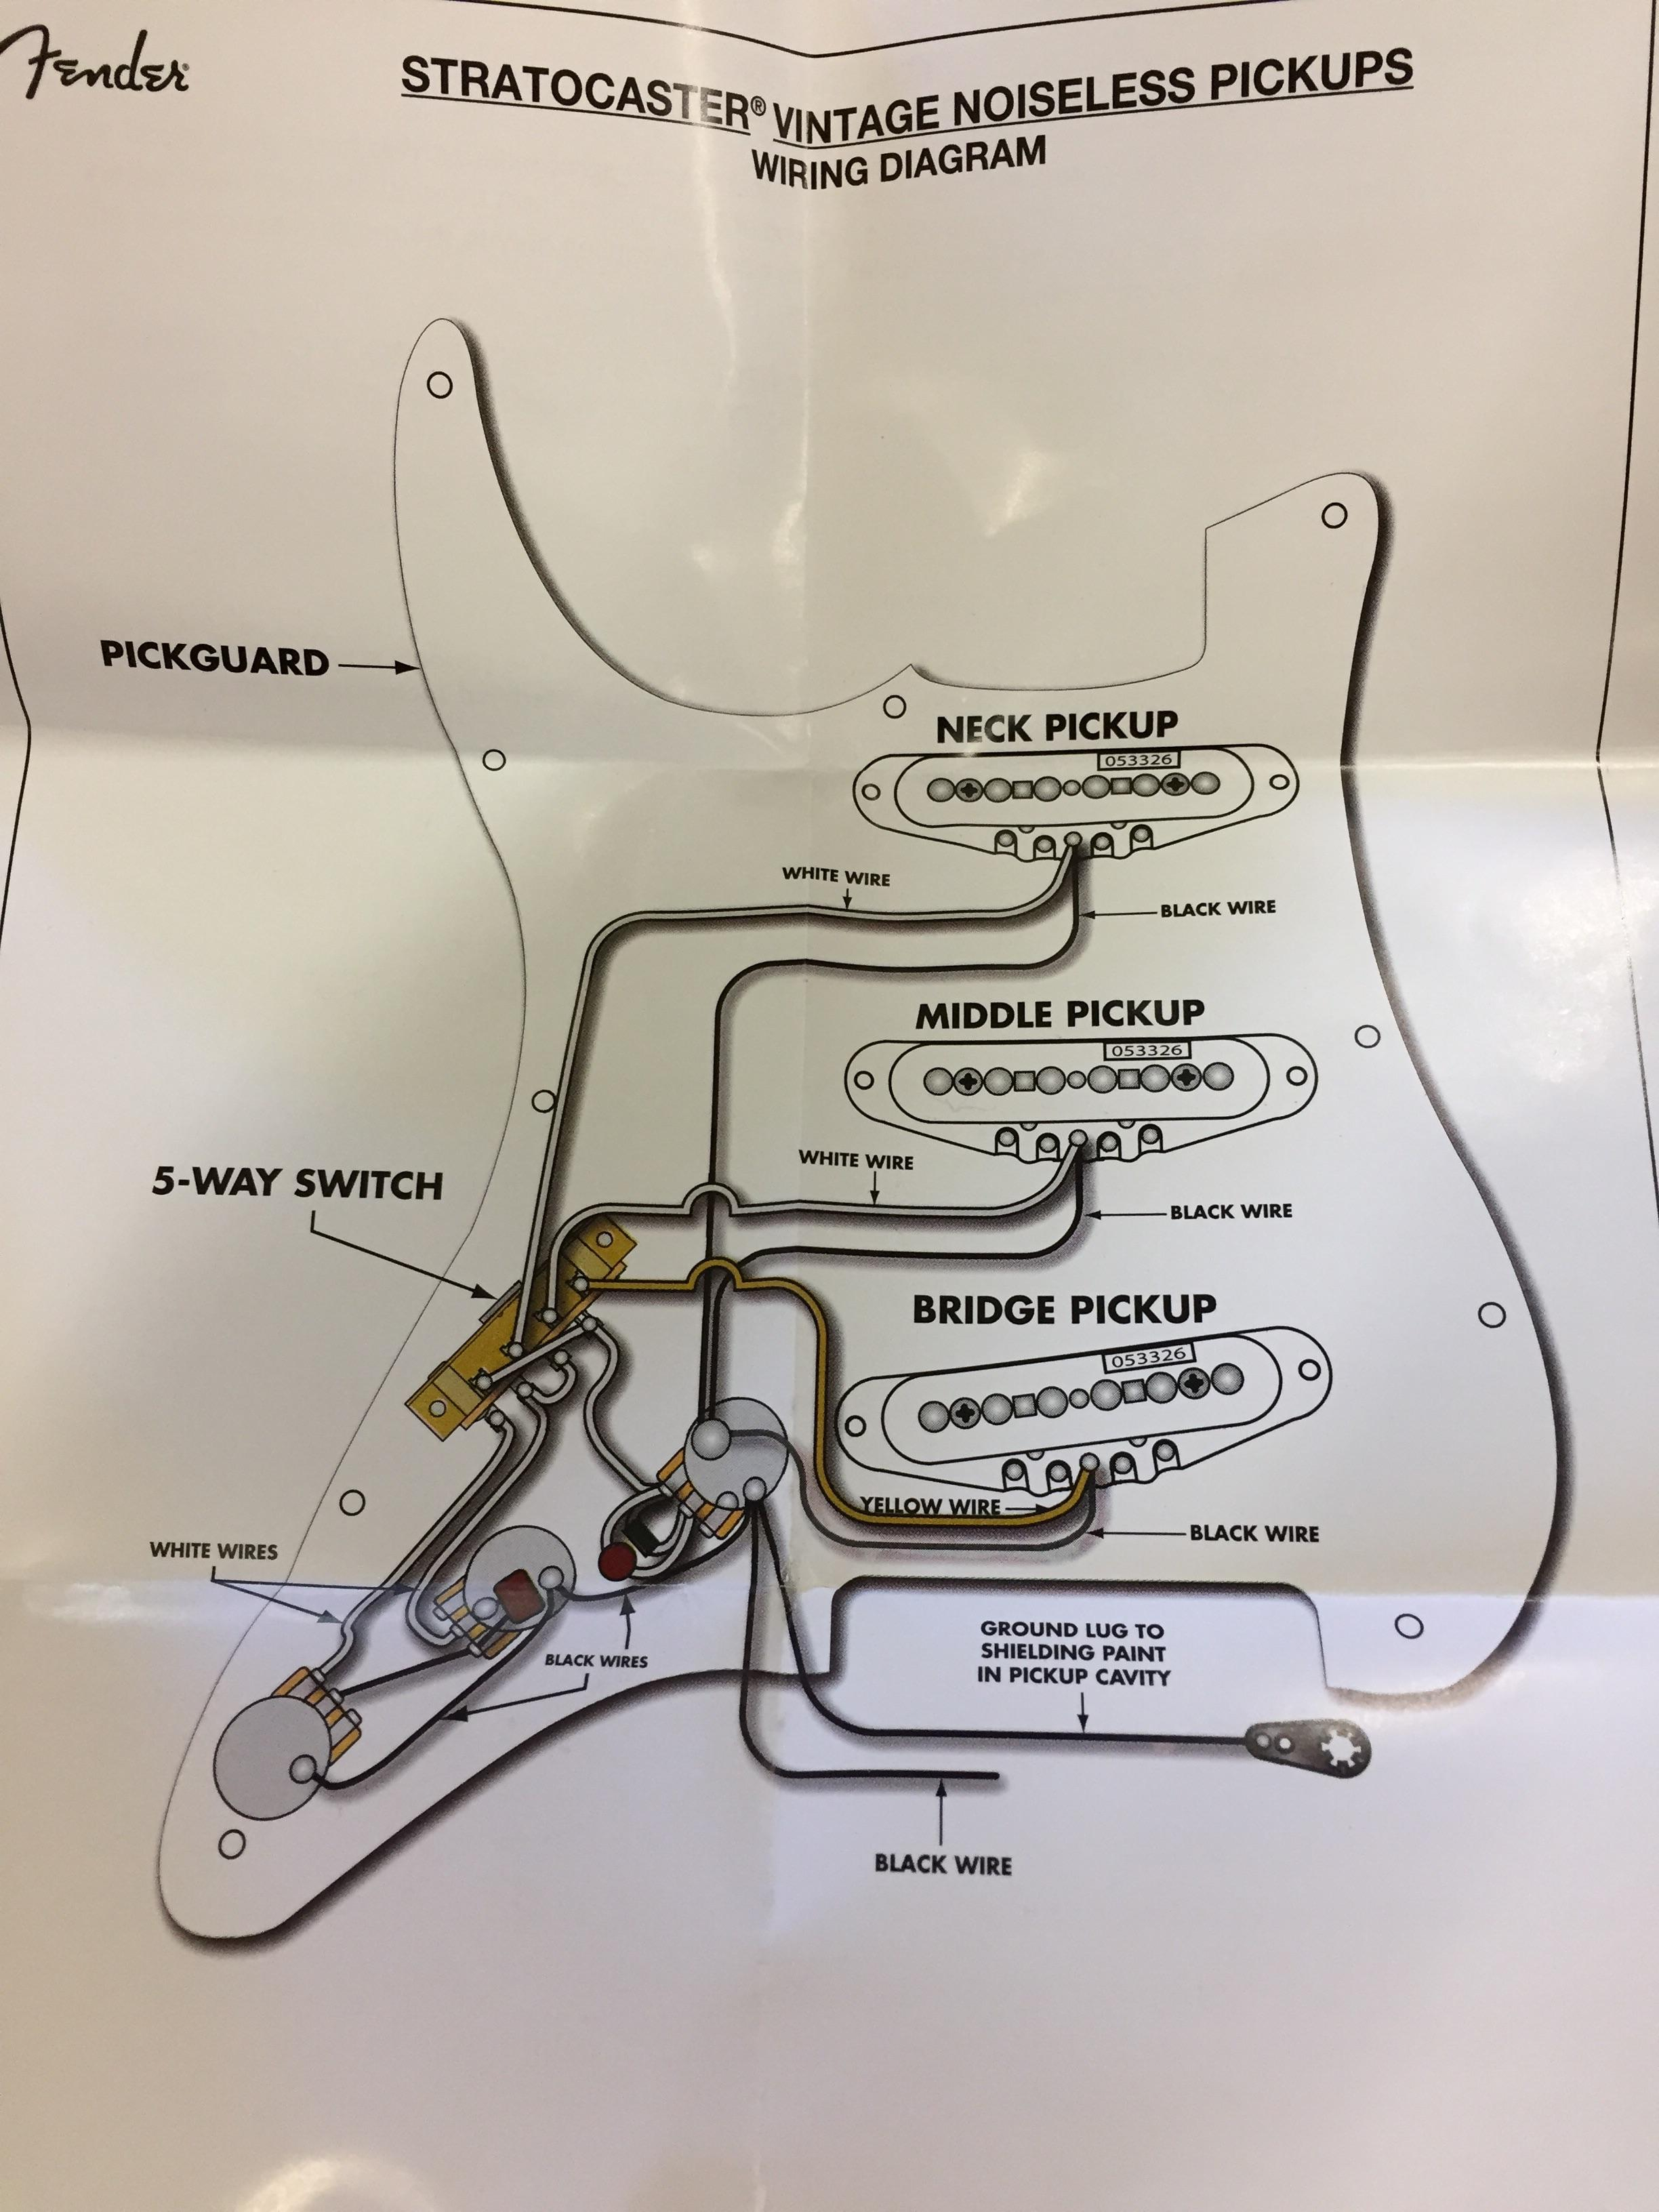 Smith Pickups Wiring Diagrams Fender N3 Pickup Wiring Diagram Fender